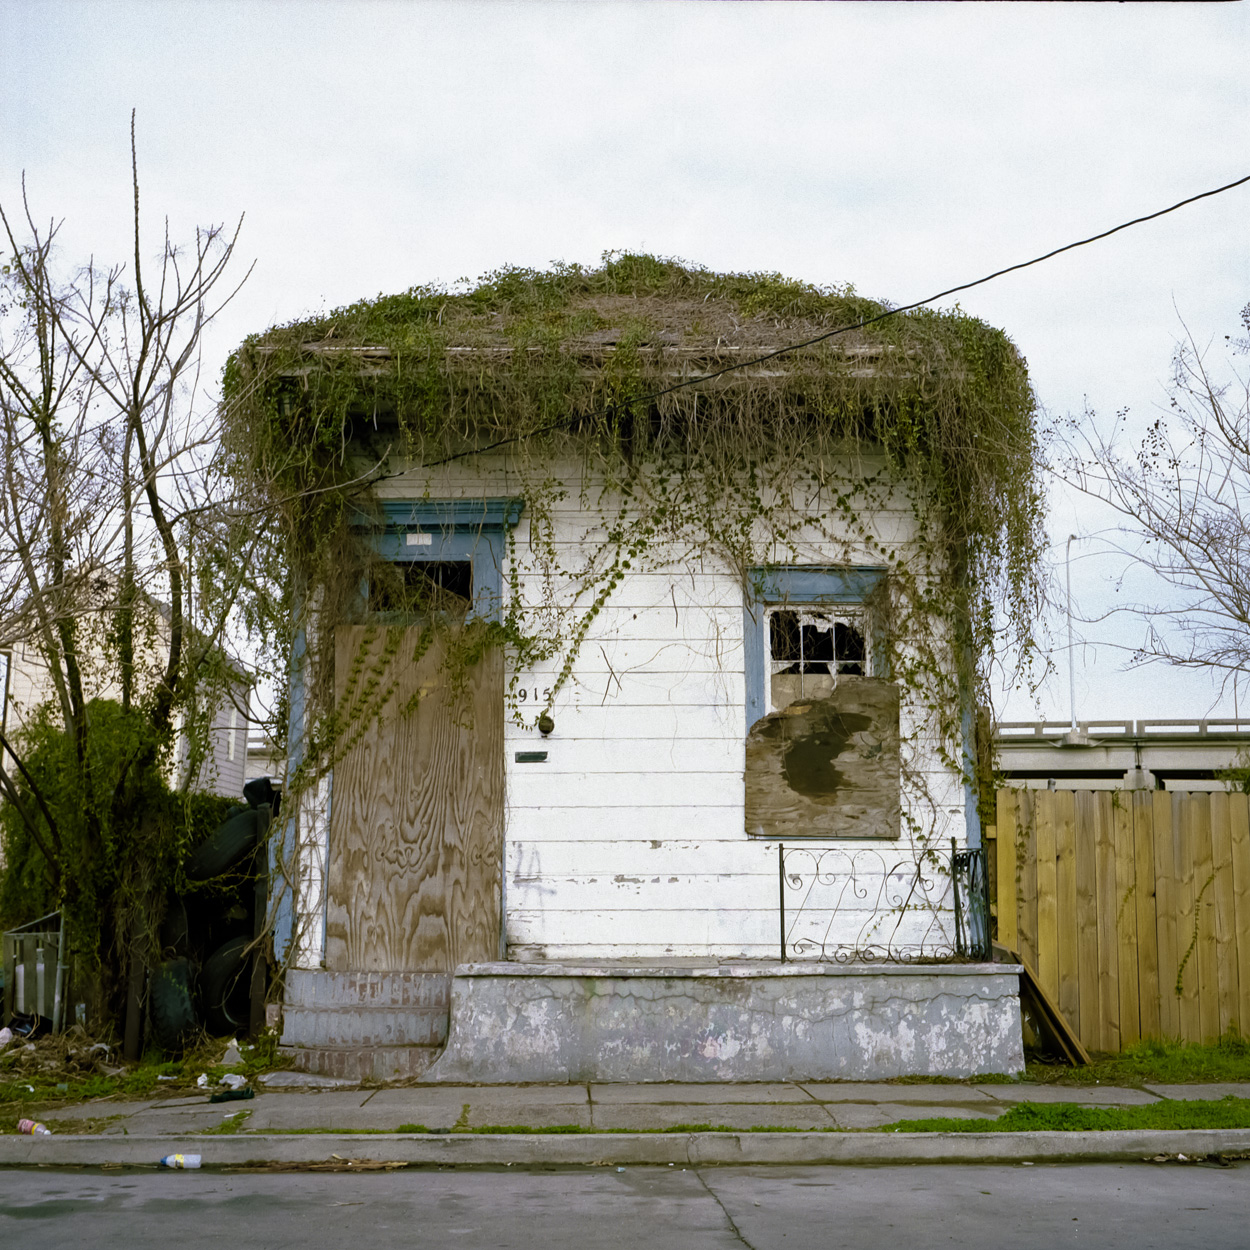 Another abandoned house has grown some hair on its roof.